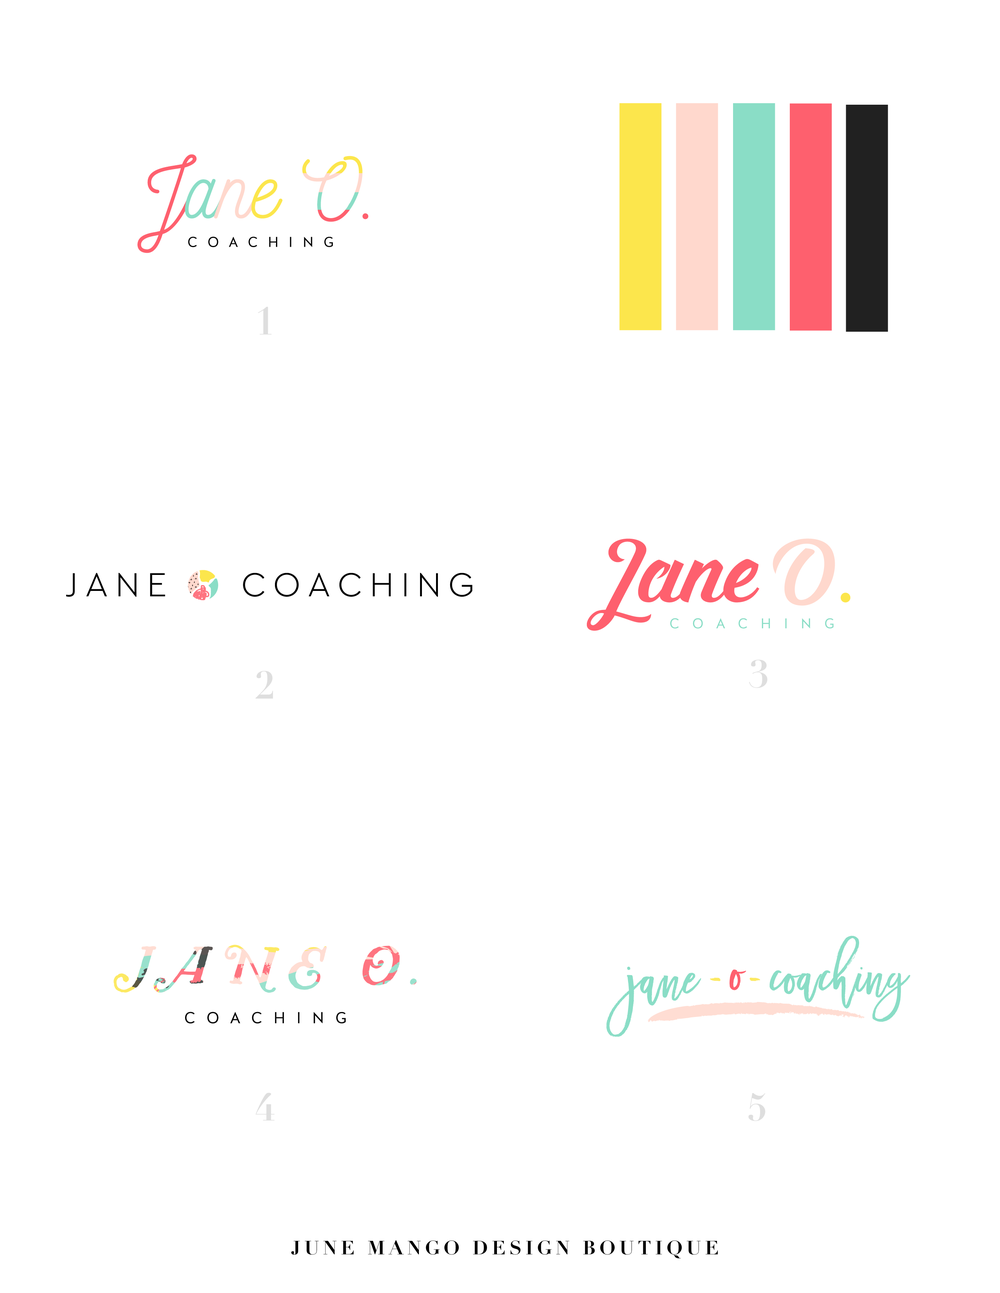 Jane-O.-Coaching-Logo-Process-01.png